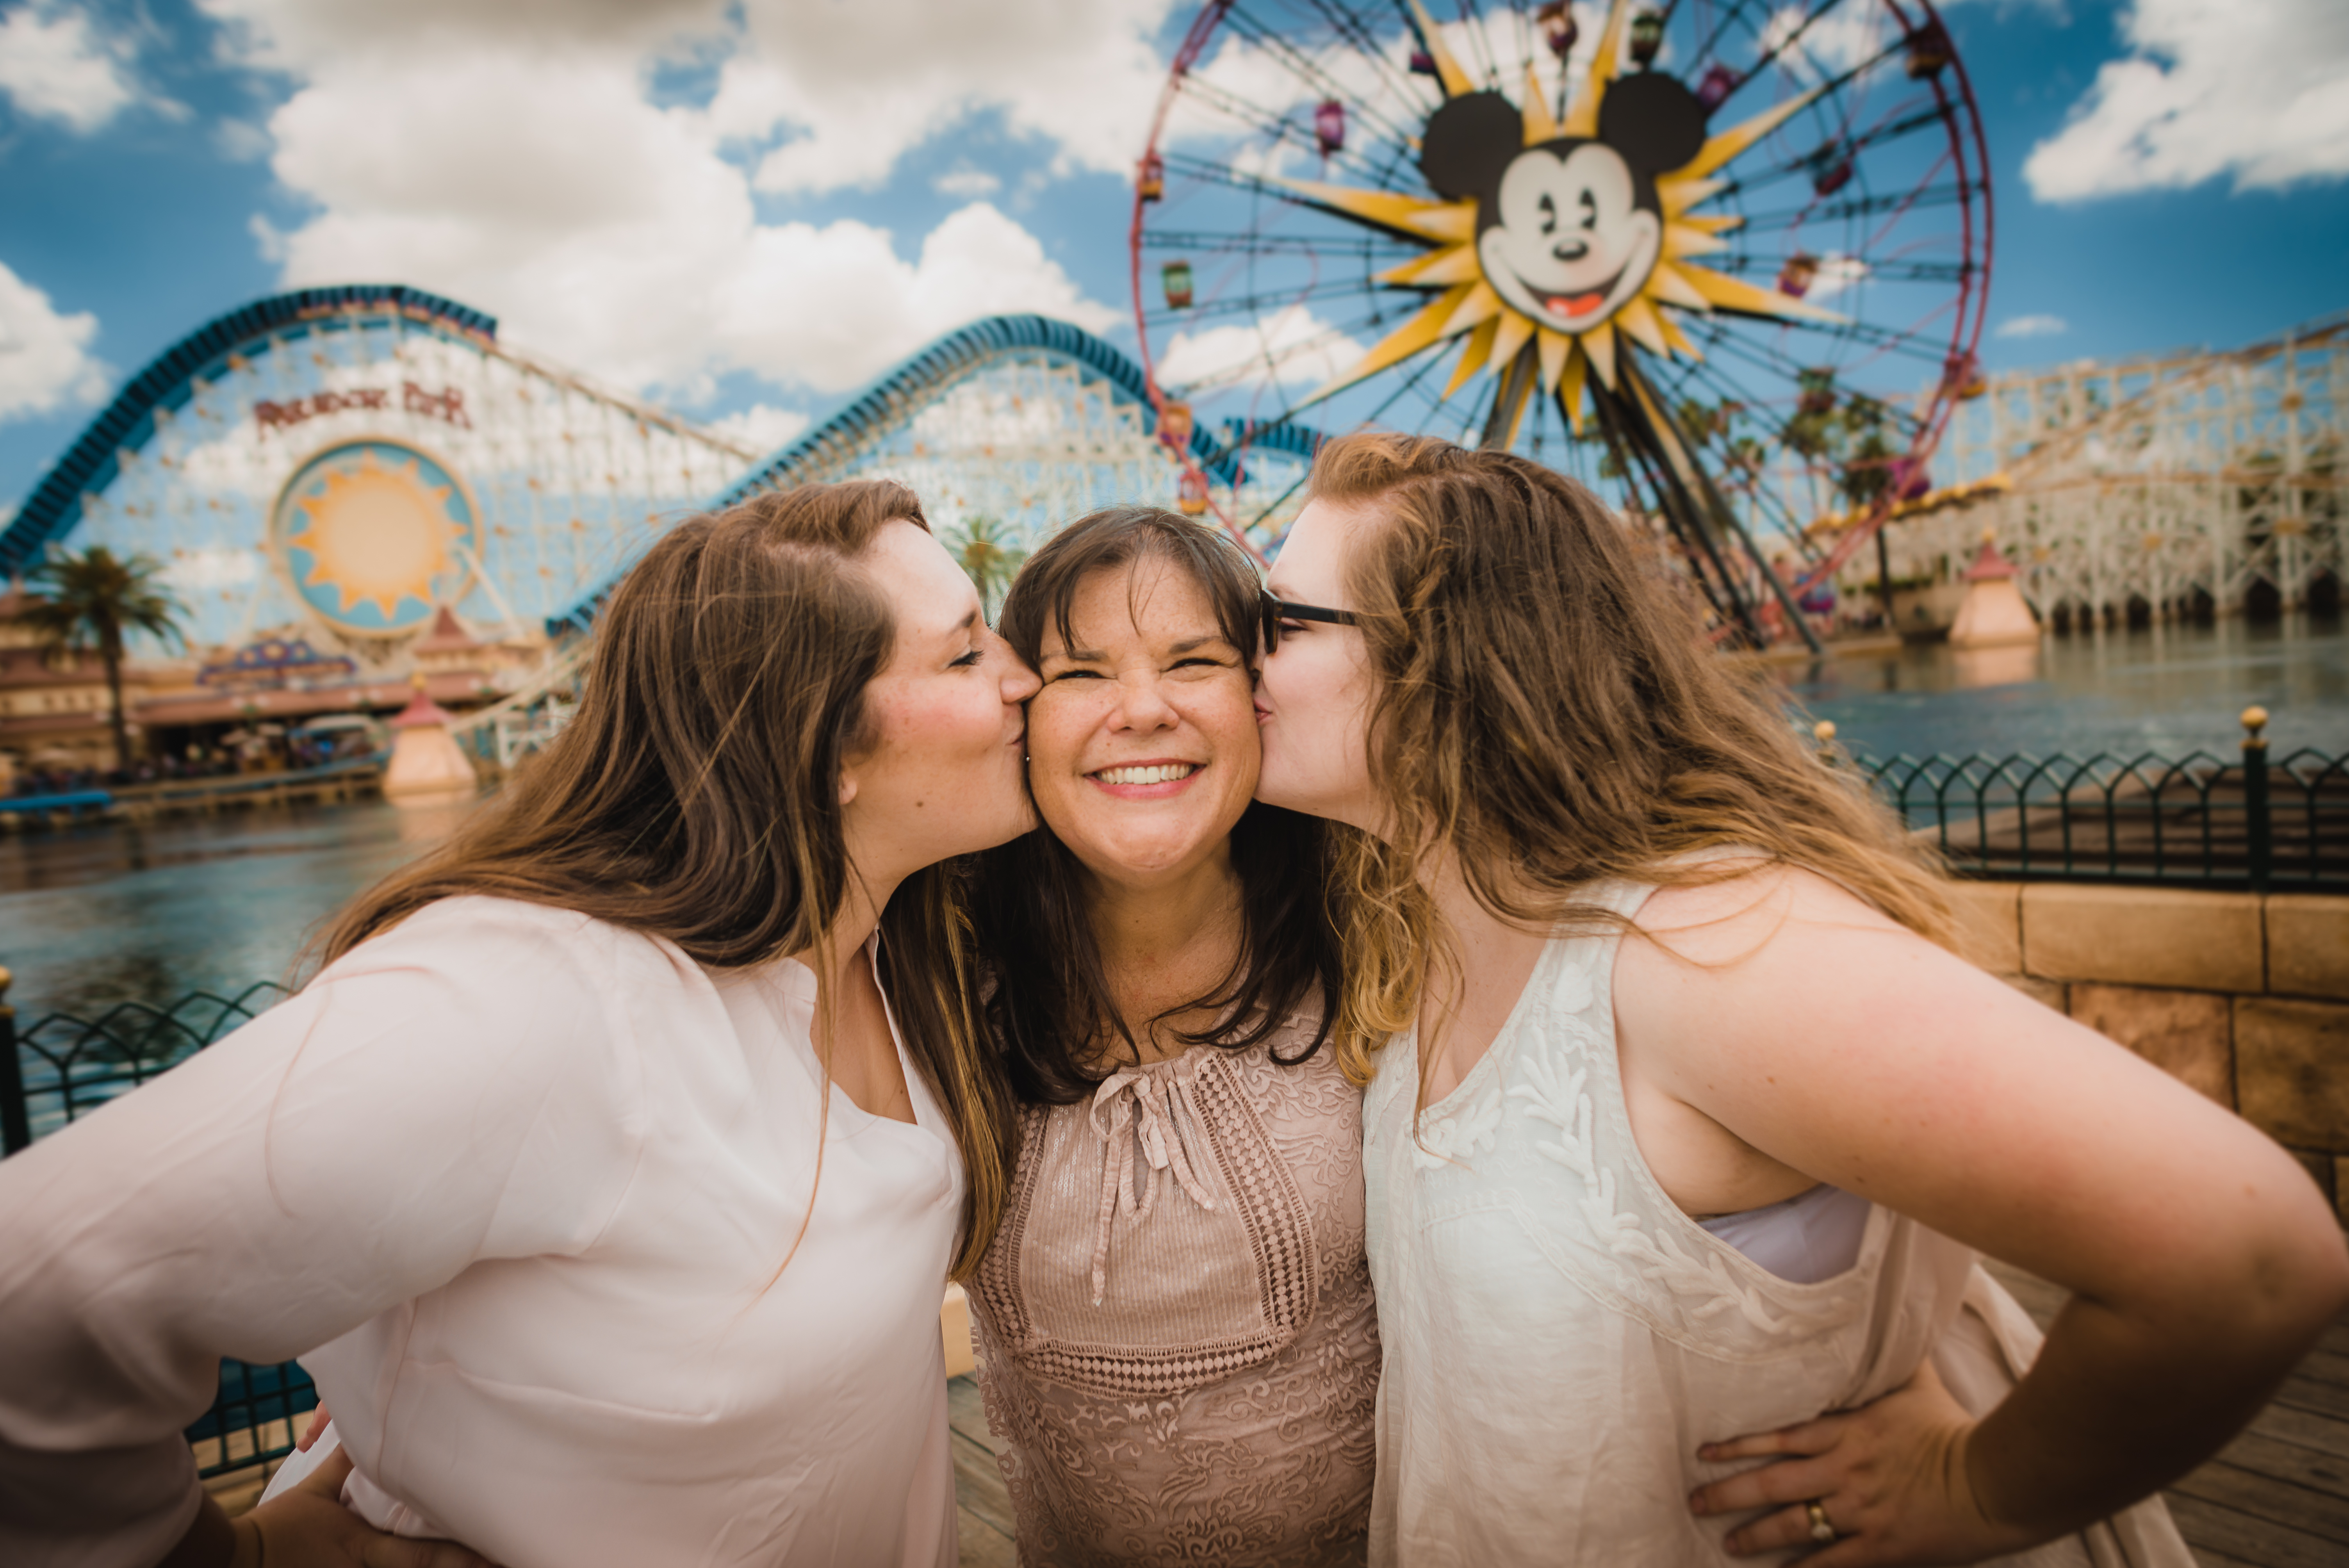 Mom and her daughters at the mickey wheel in California Adventure